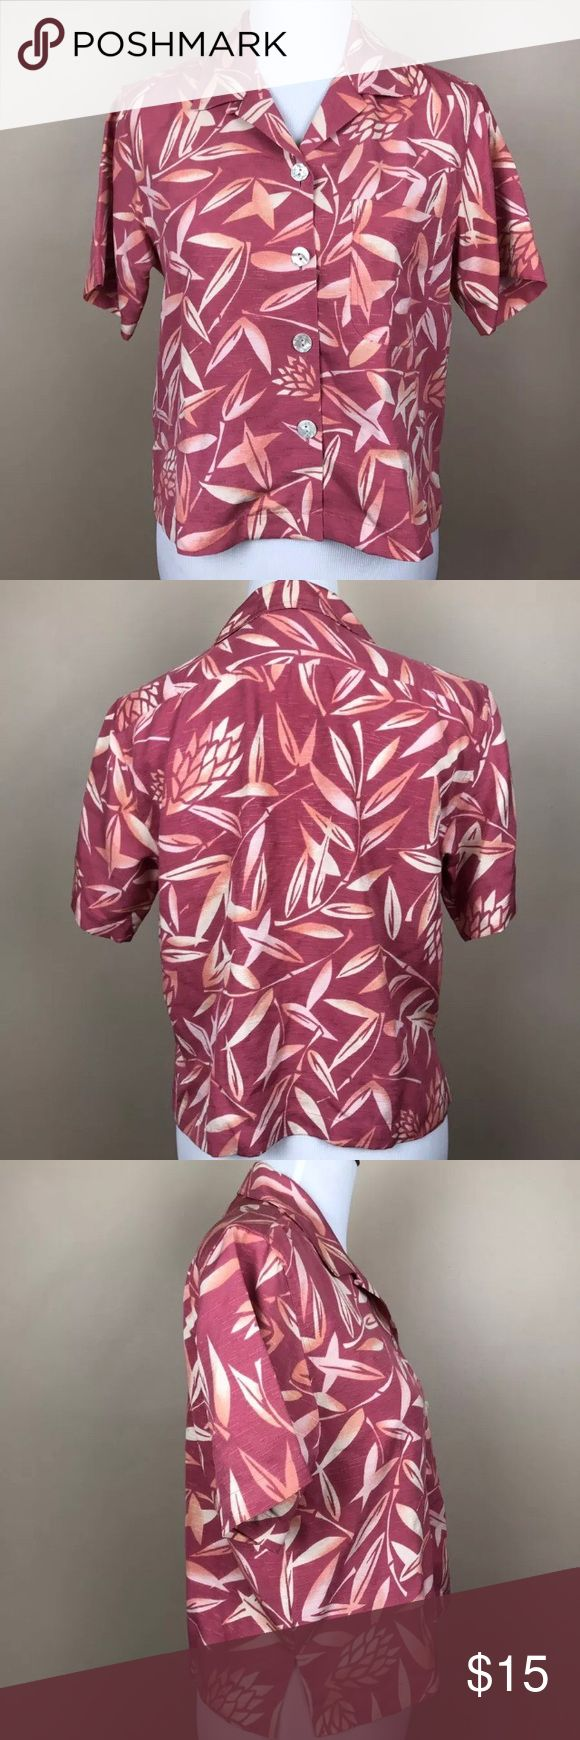 Tommy Bahama Silk Boxy Cut Button down - Sz XS Brand: Tommy Bahama   Size: Extra small ( XS )   Measurements: see photos   Condition: very good. Light overall wear - tag has a mark through it   Color(s): varying shades of pink in a Hawaiian Pattern   100% silk  ----    I do have a dog who sheds. I lint roll prior to shipping, but it is good to be aware Tommy Bahama Tops Button Down Shirts